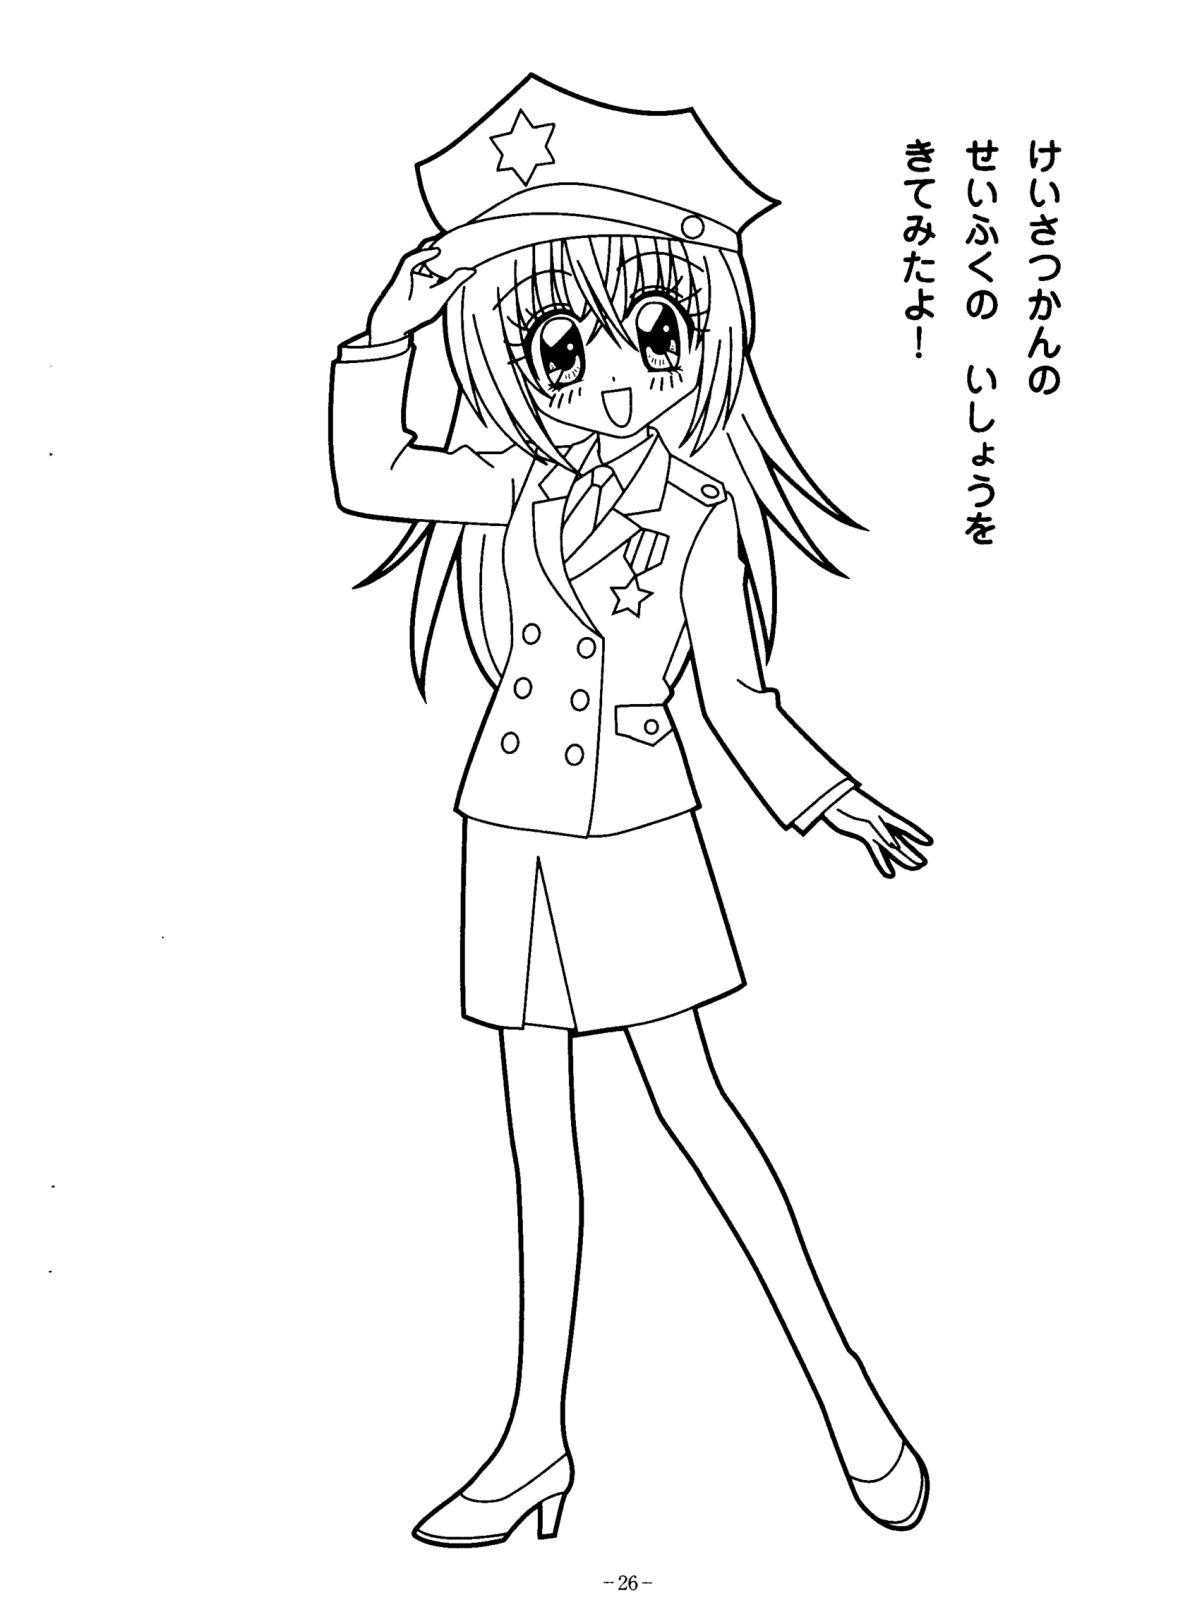 school girl coloring pages anime school girl coloring page google search coloring coloring school pages girl